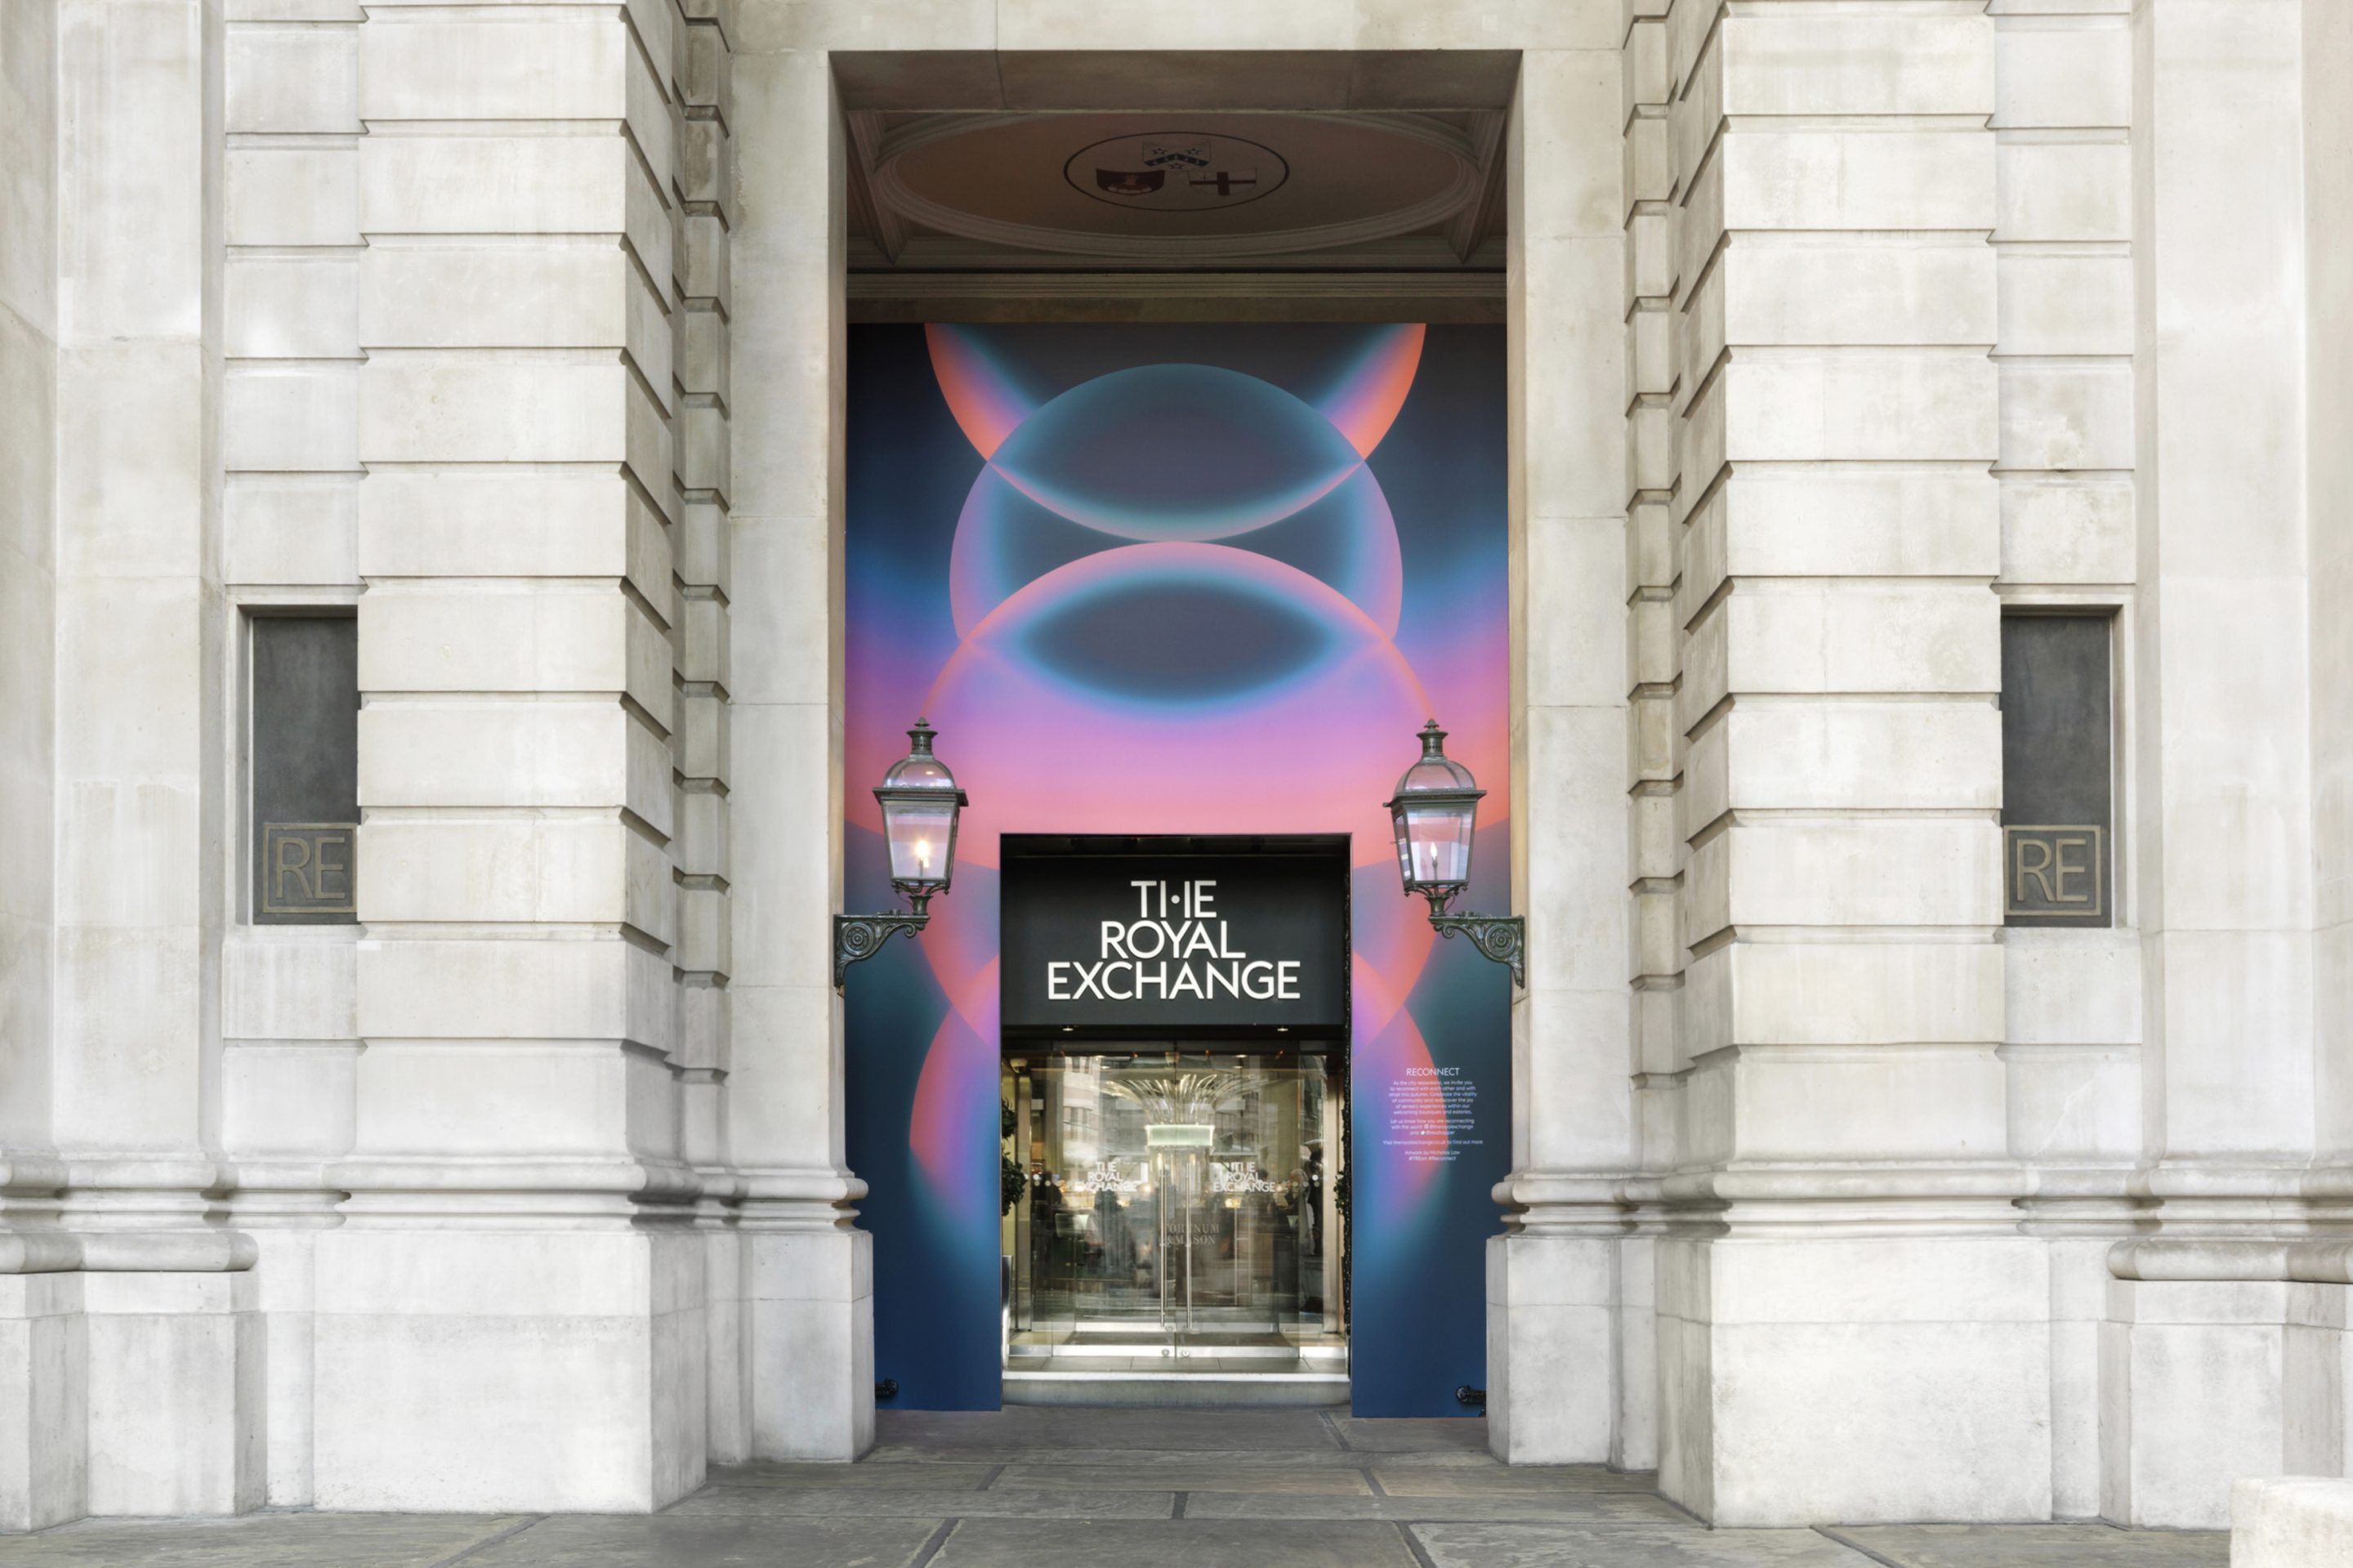 Nicholas Law's Reconnect artwork at The Royal Exchange